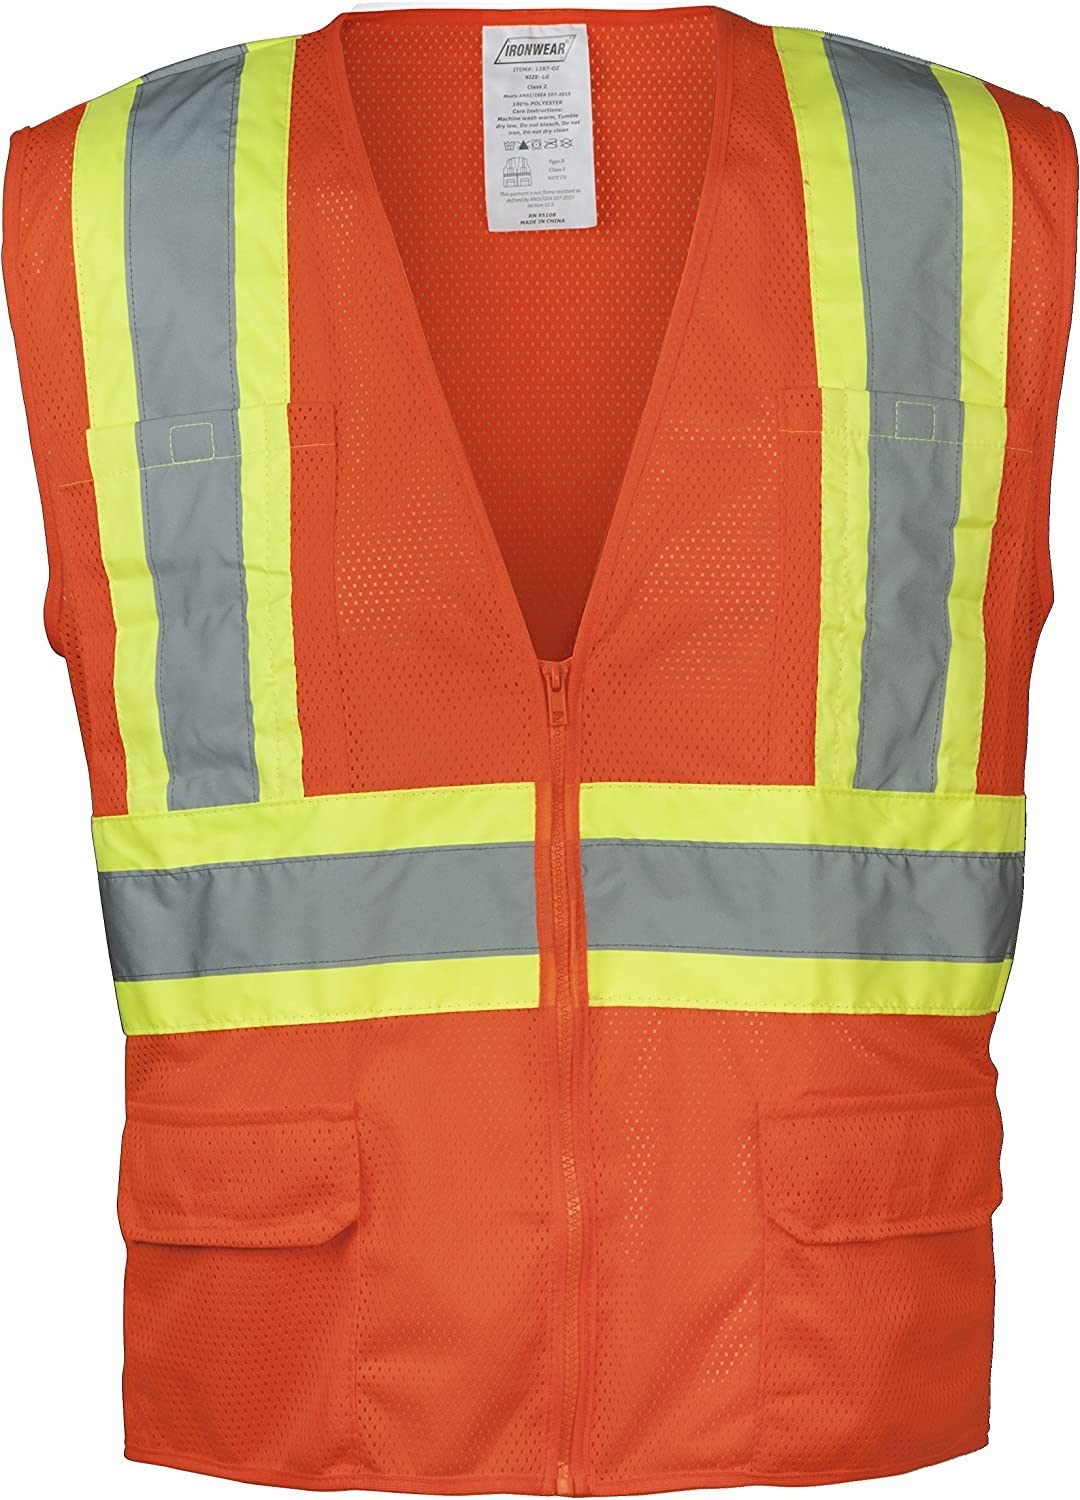 Ironwear 1284FR-L-6-3XLG ANSI Class 2 Flame Retardant Polyester Mesh Safety Vest with 2 Silver Reflective Tape 3X-Large Lime